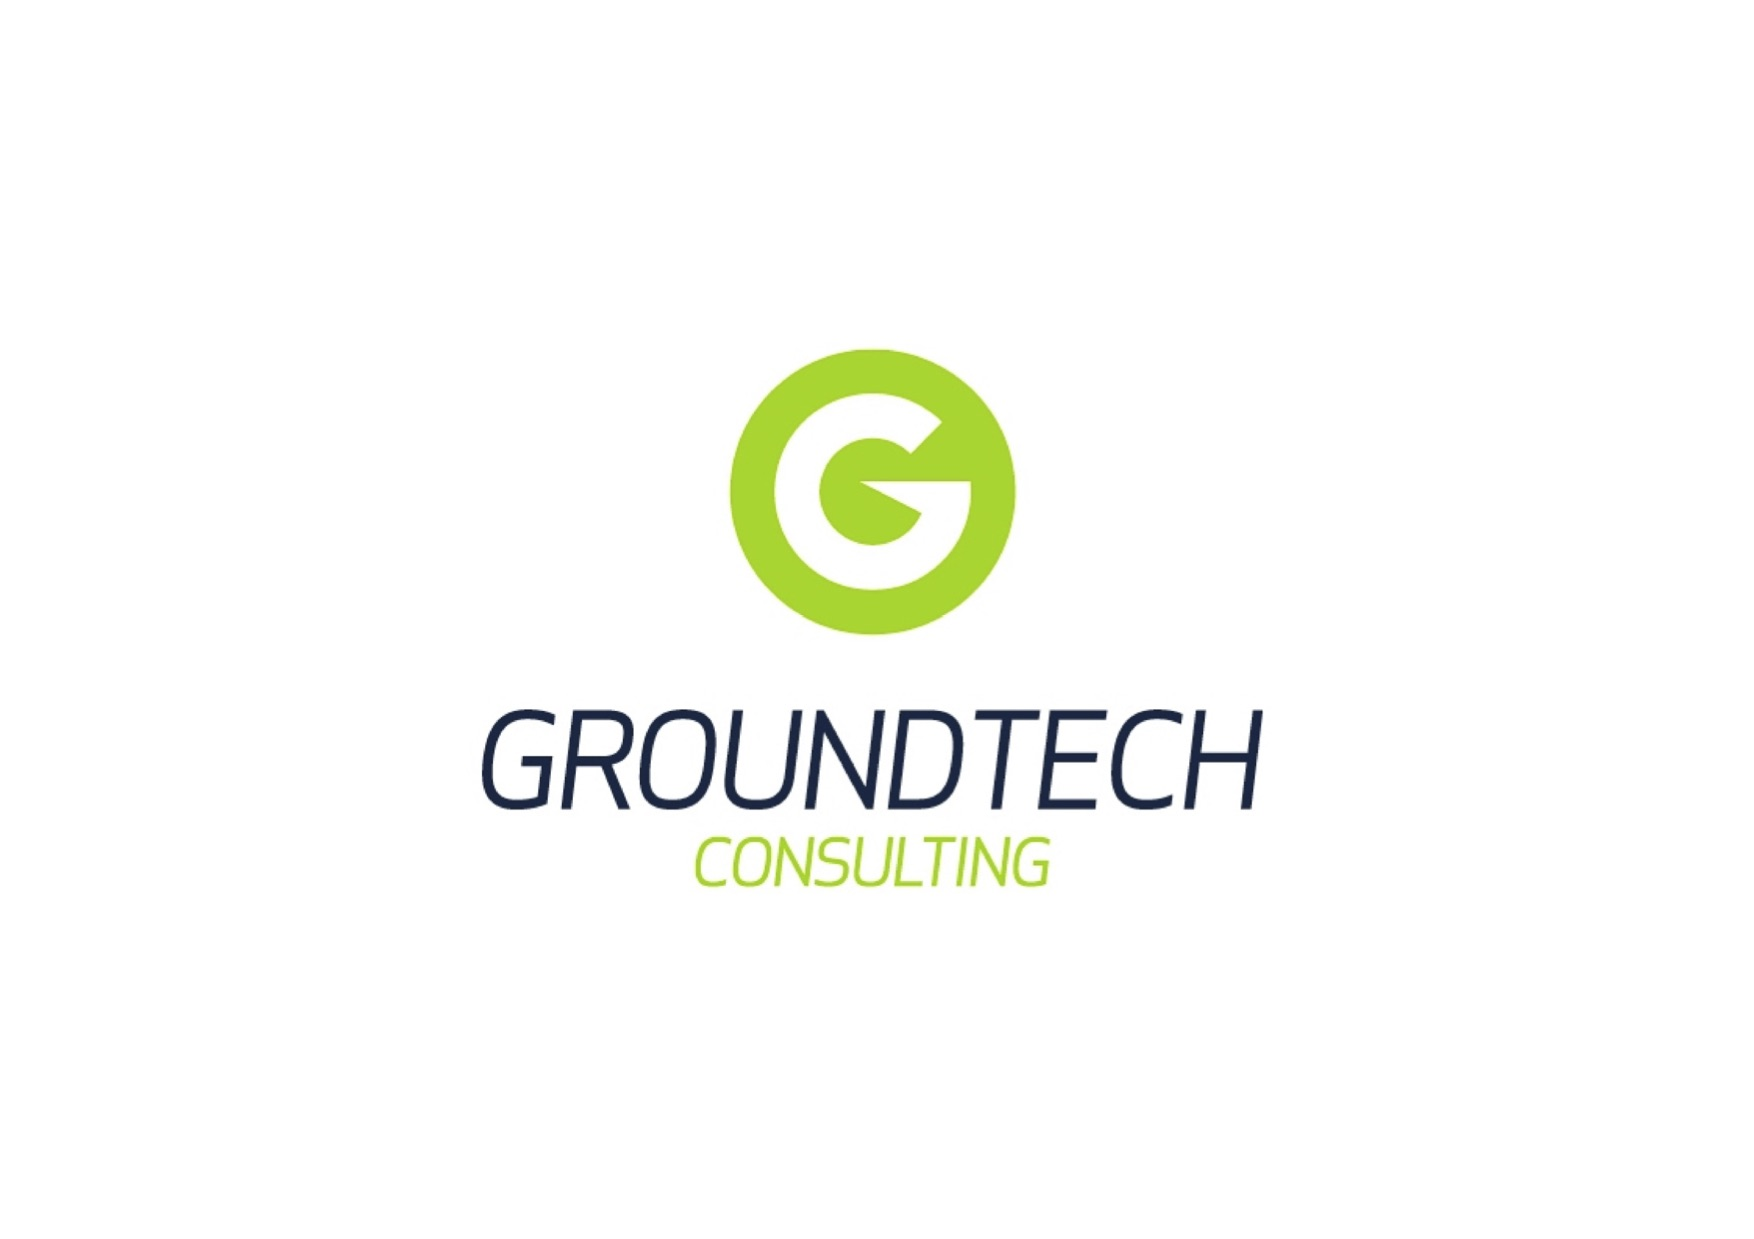 Groundtech Consulting